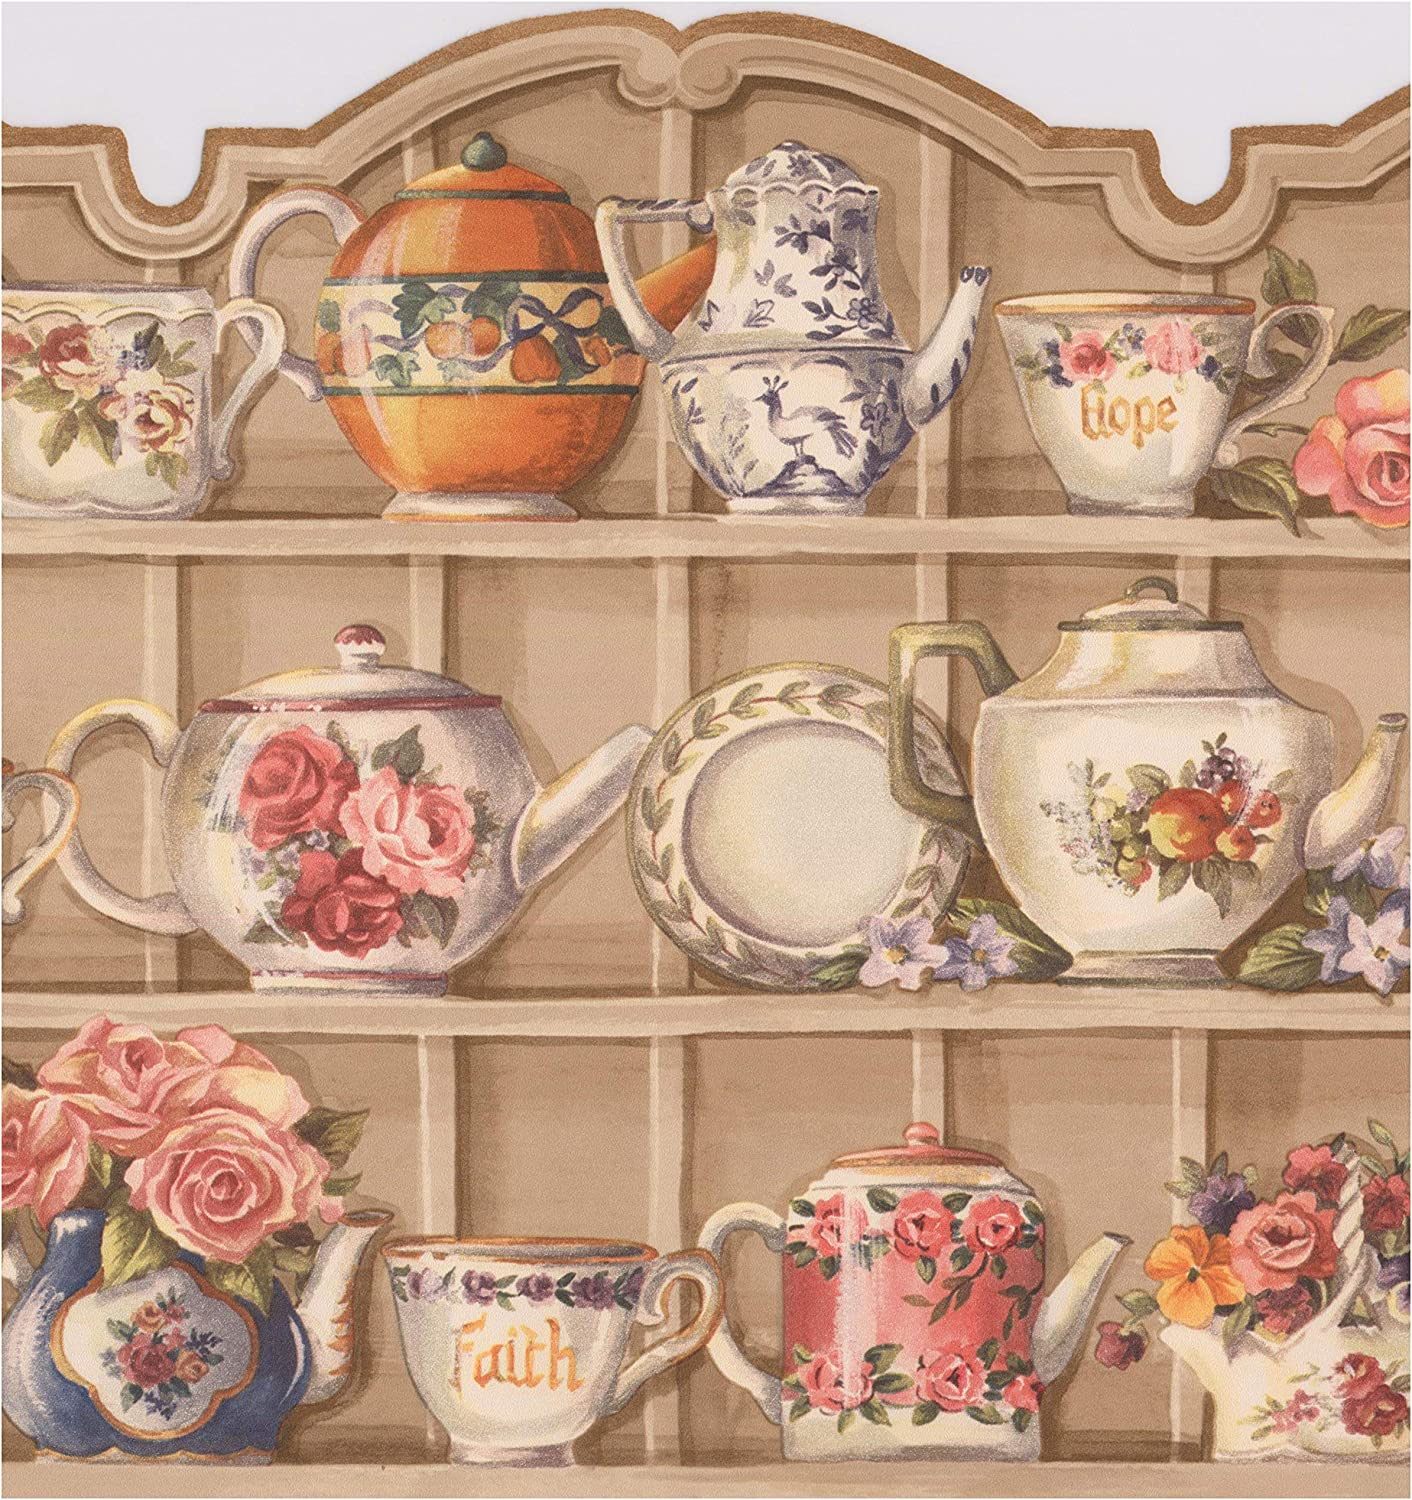 Beige Kitchen Cabinets With Plates Cups Flowers Kettle Wide Wallpaper Border Vintage Design Roll 15 X 9 75 Amazon Com